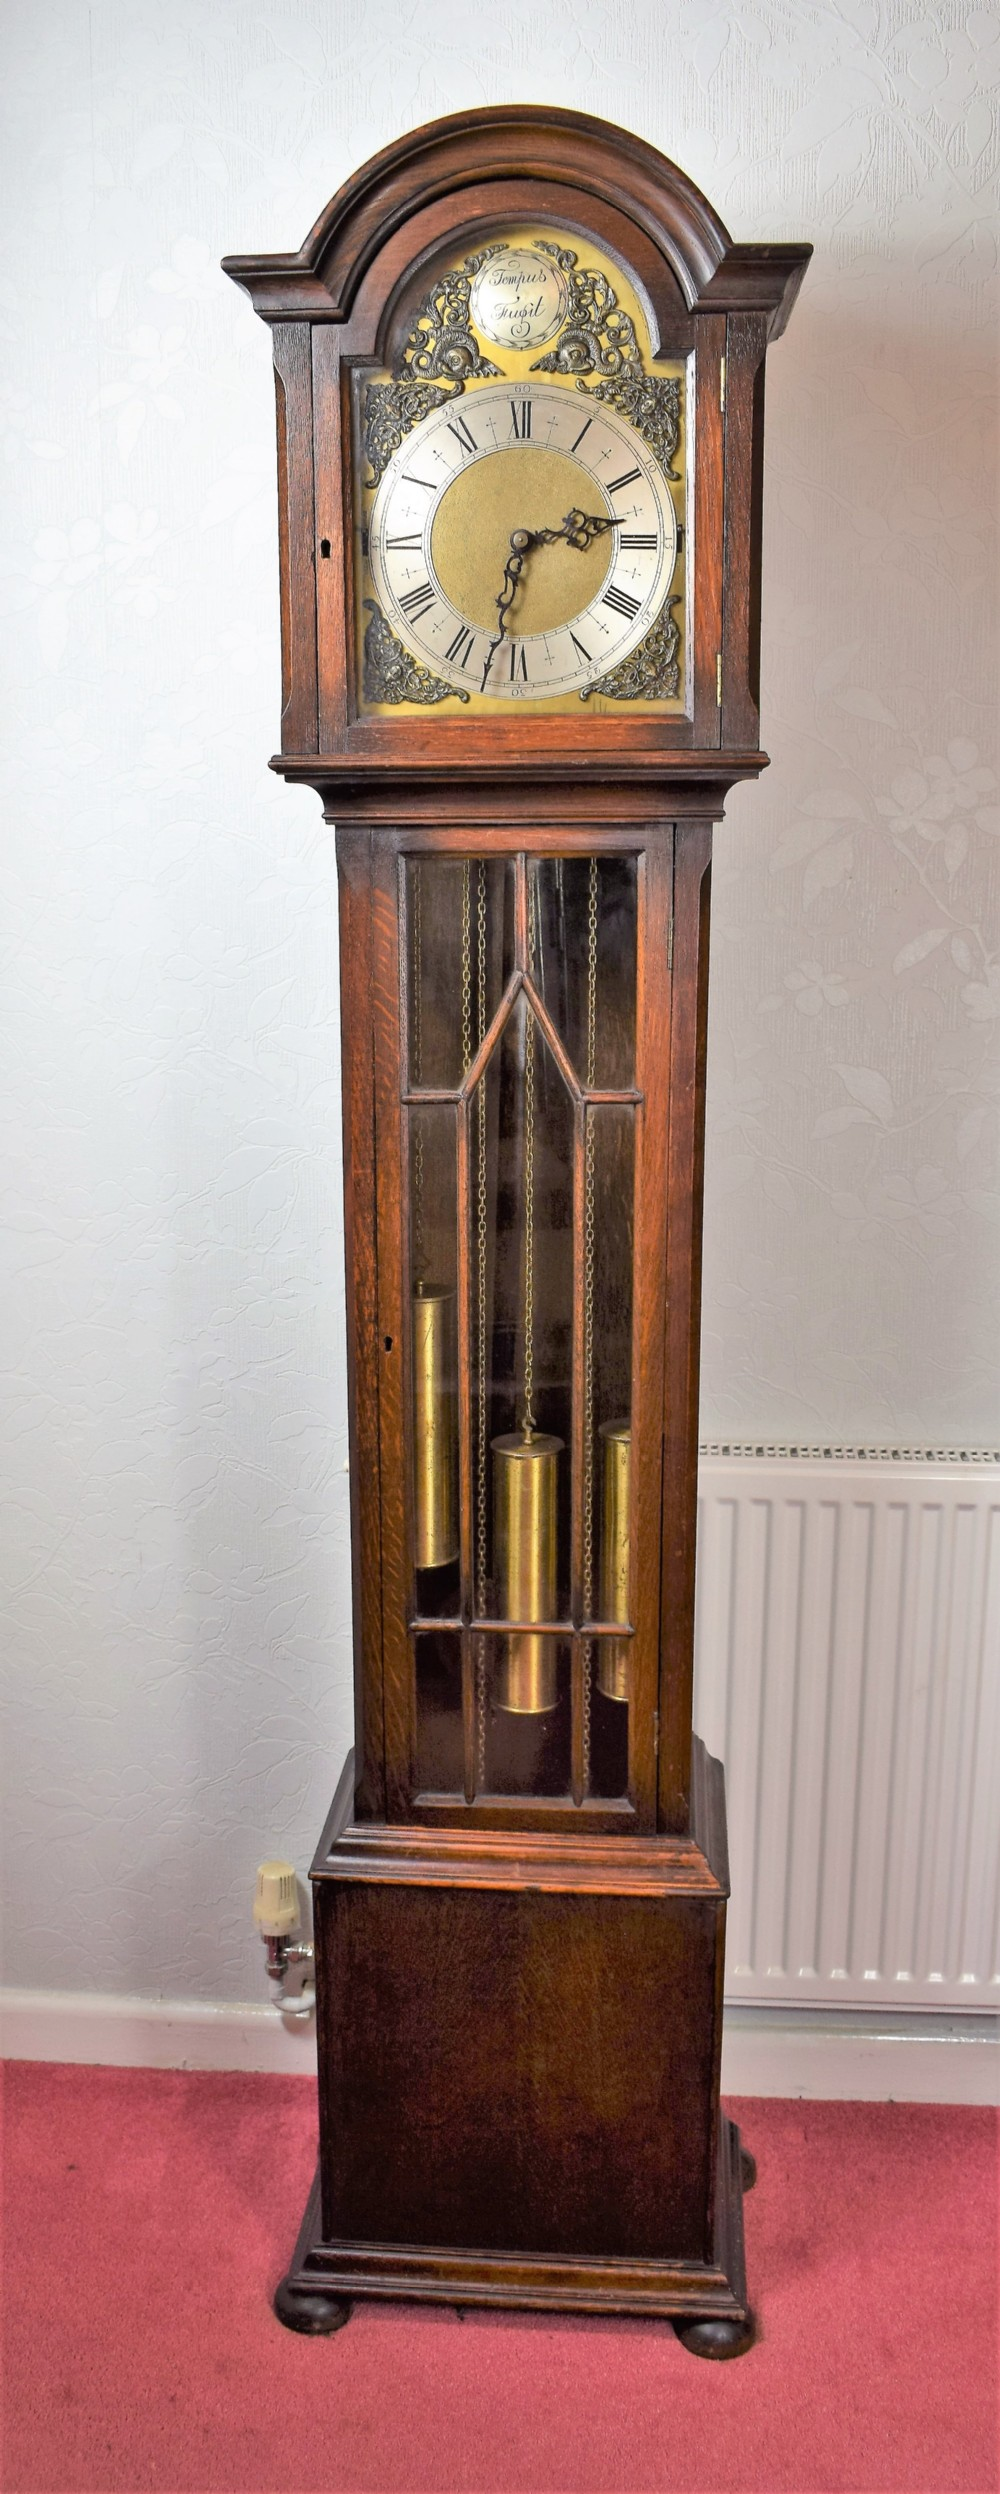 astragal glazed triple weight oak grandmother or grandfather longcase clock with good quality embee 8 day movement playing mellow westminster musical chimes on each quarter